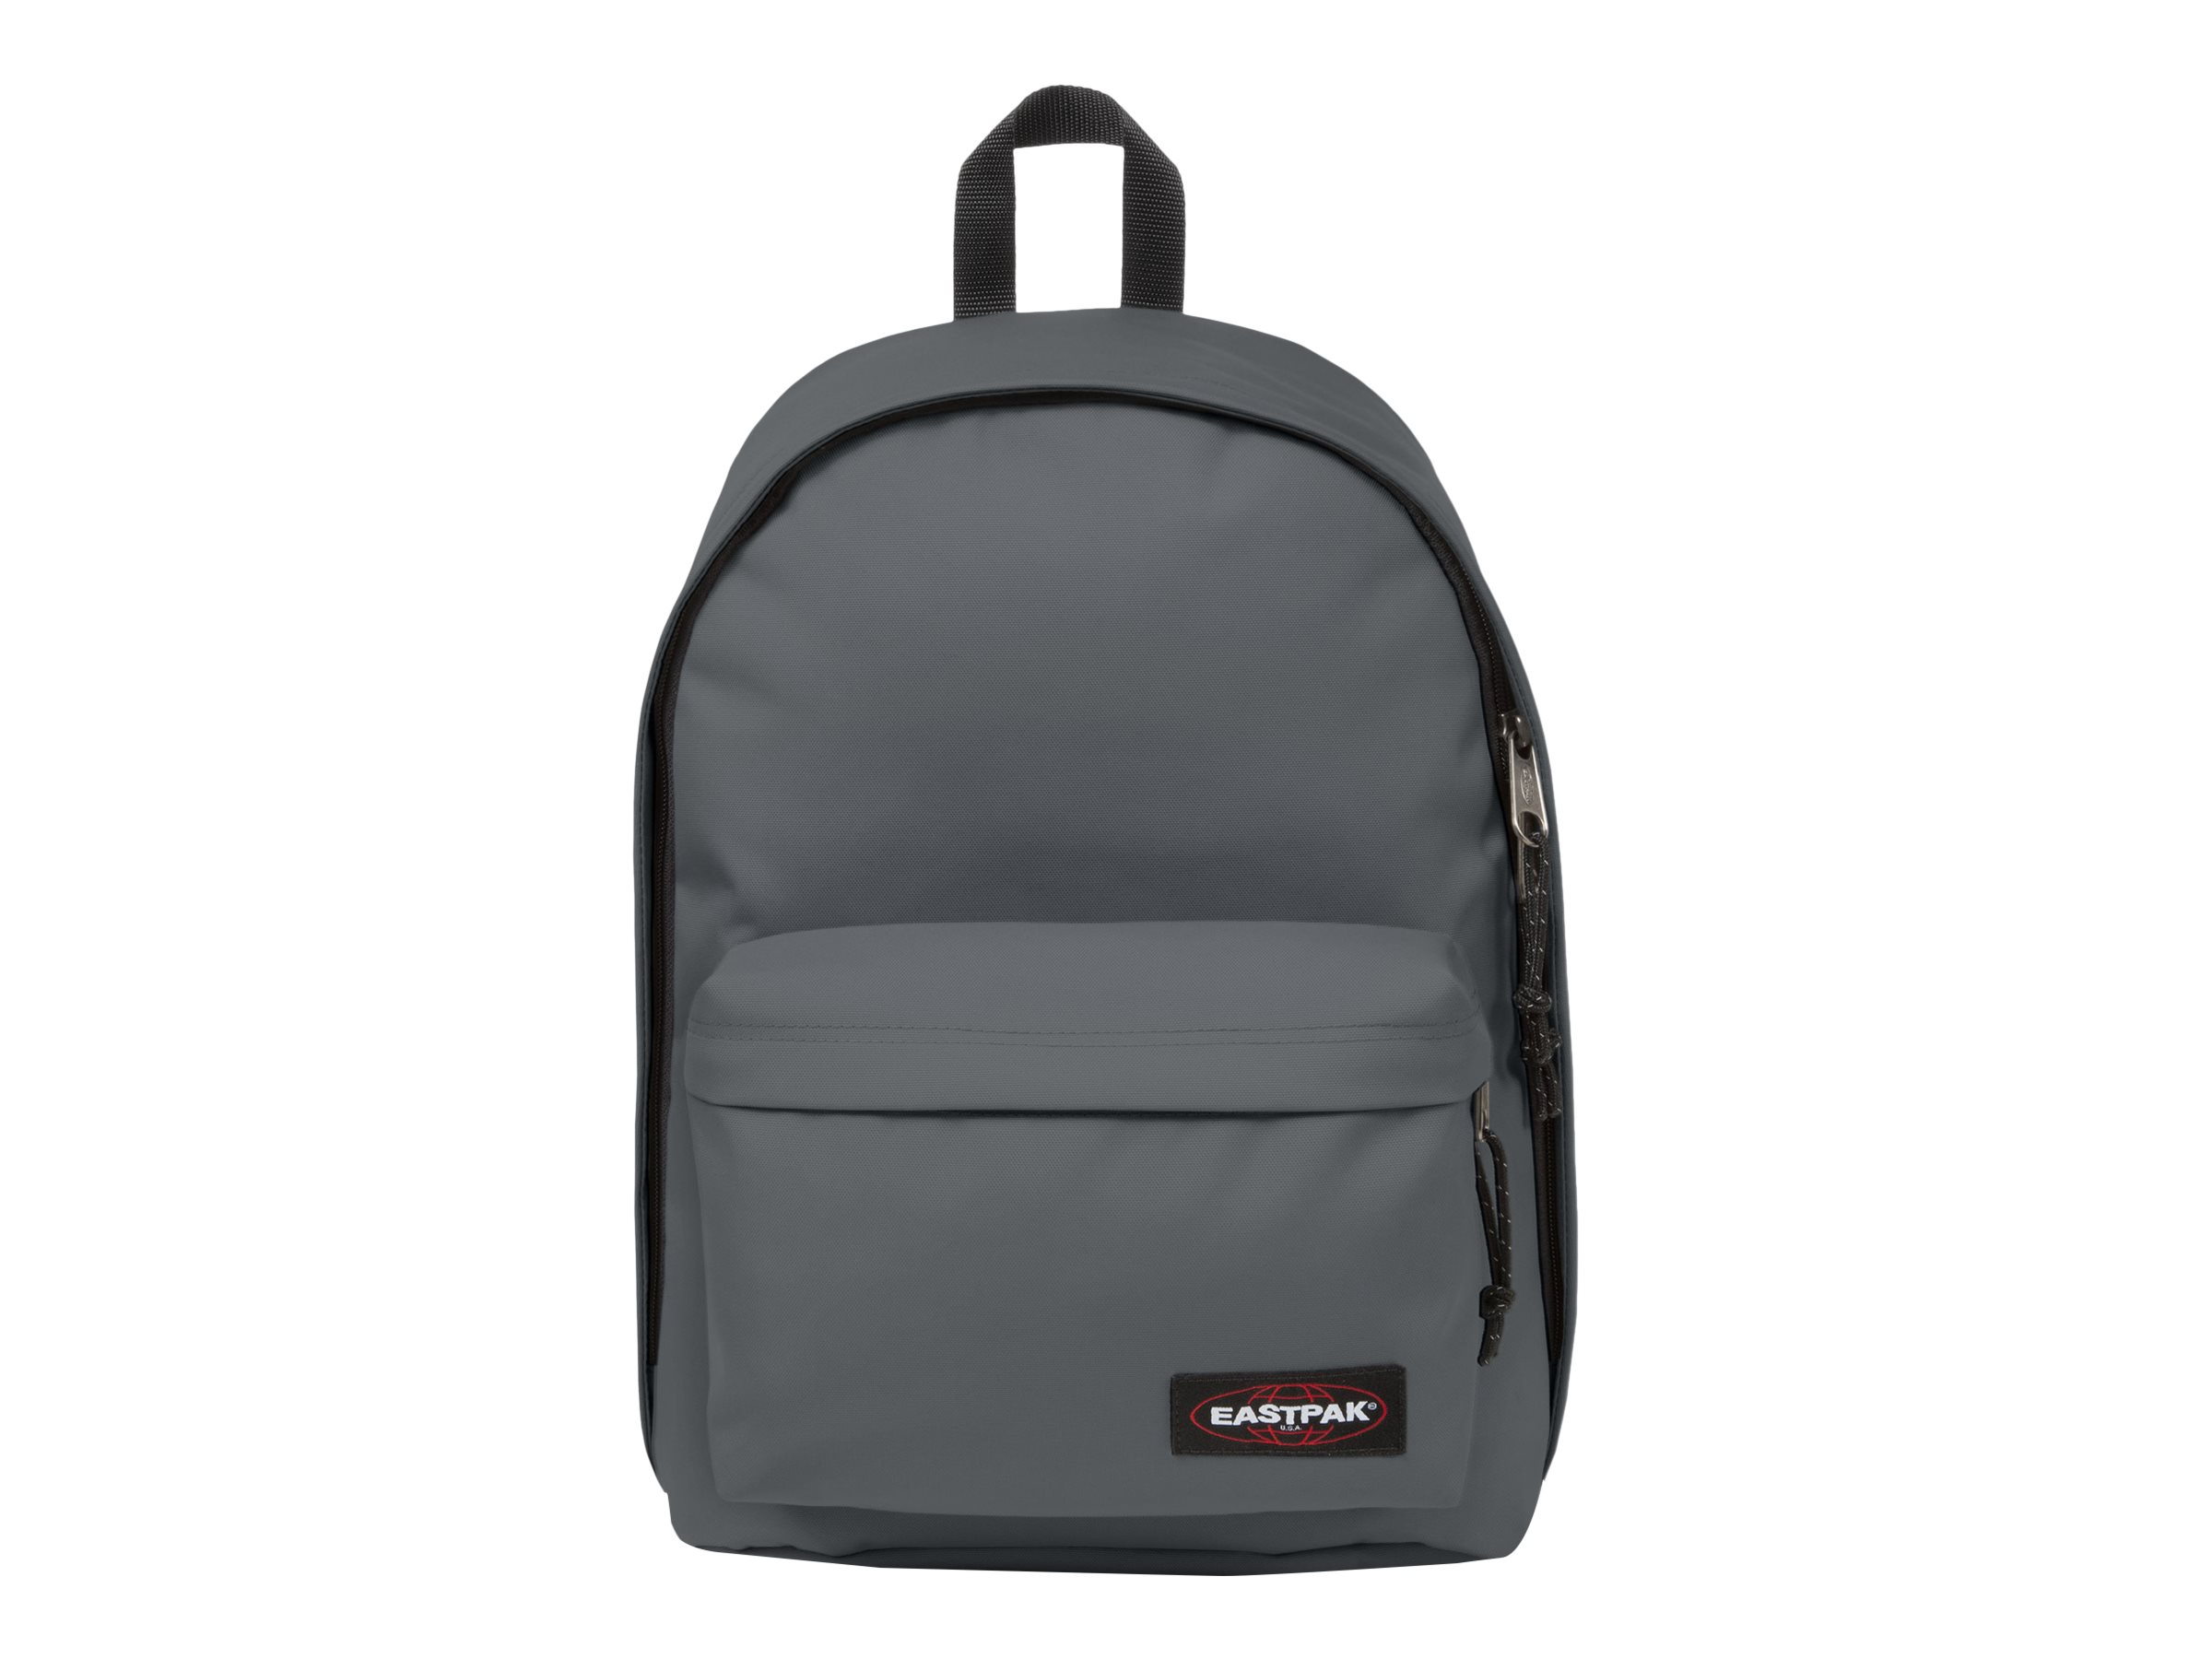 EASTPAK Out Of Office - Sac à dos coal avec compartiment pour ordinateur portable